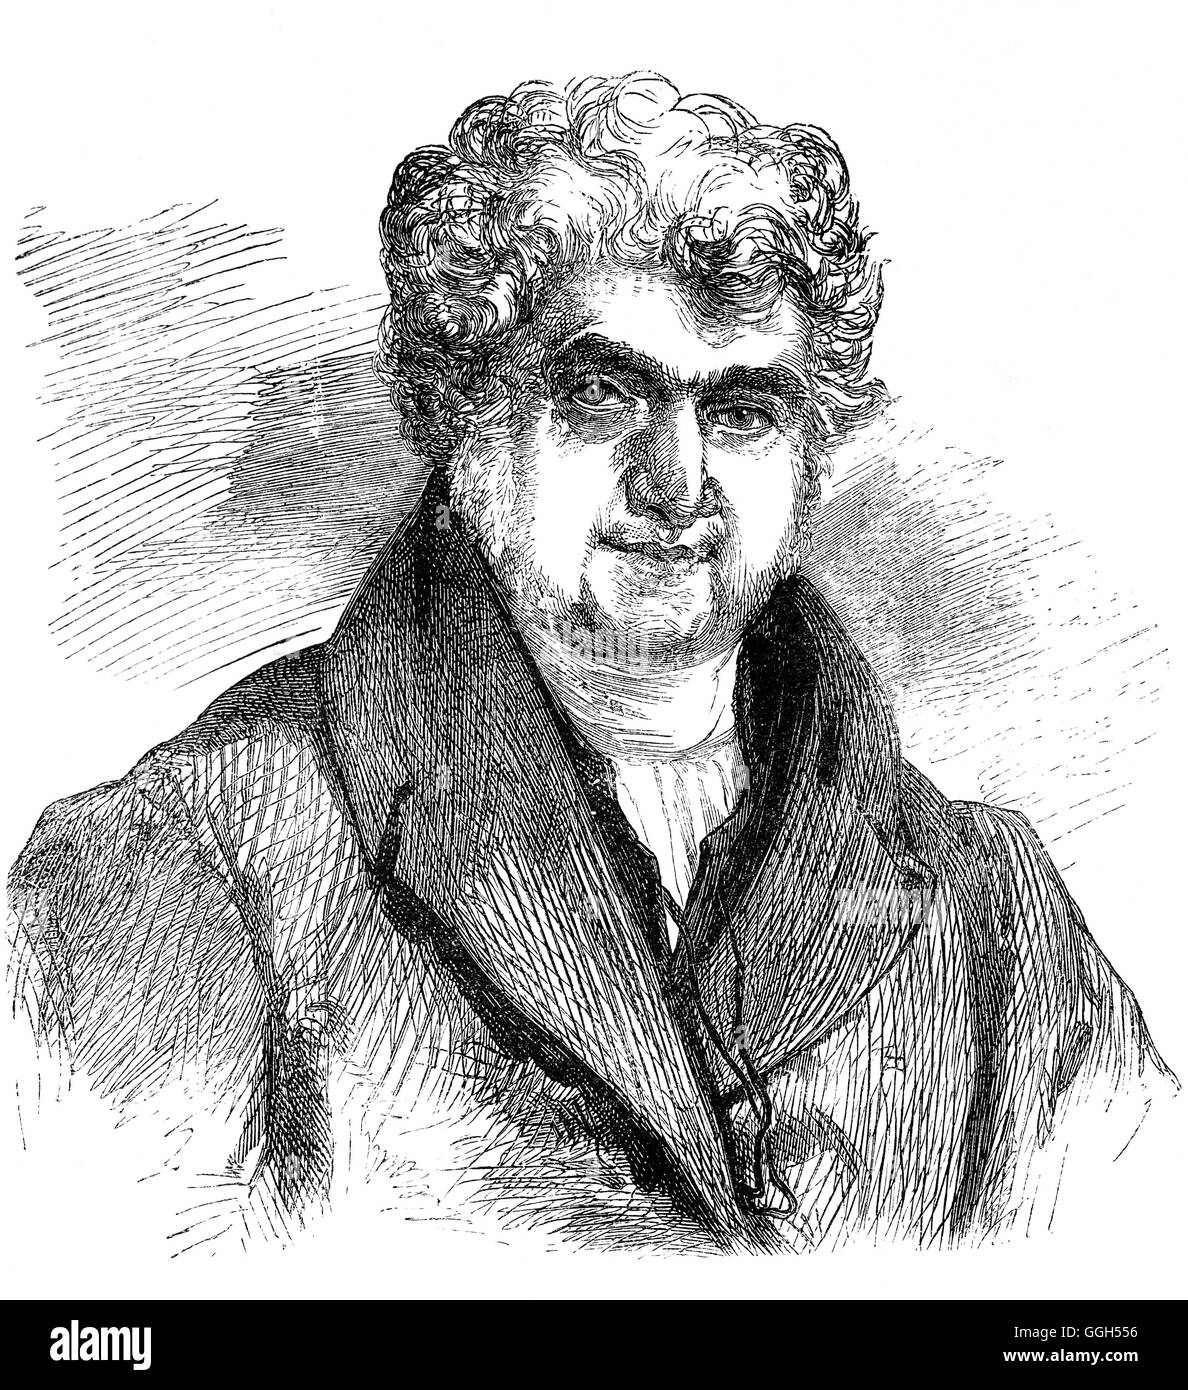 The Rev. William Jay (1769 – 1853) was an English nonconformist divine considered to be one of the most eminent - Stock Image